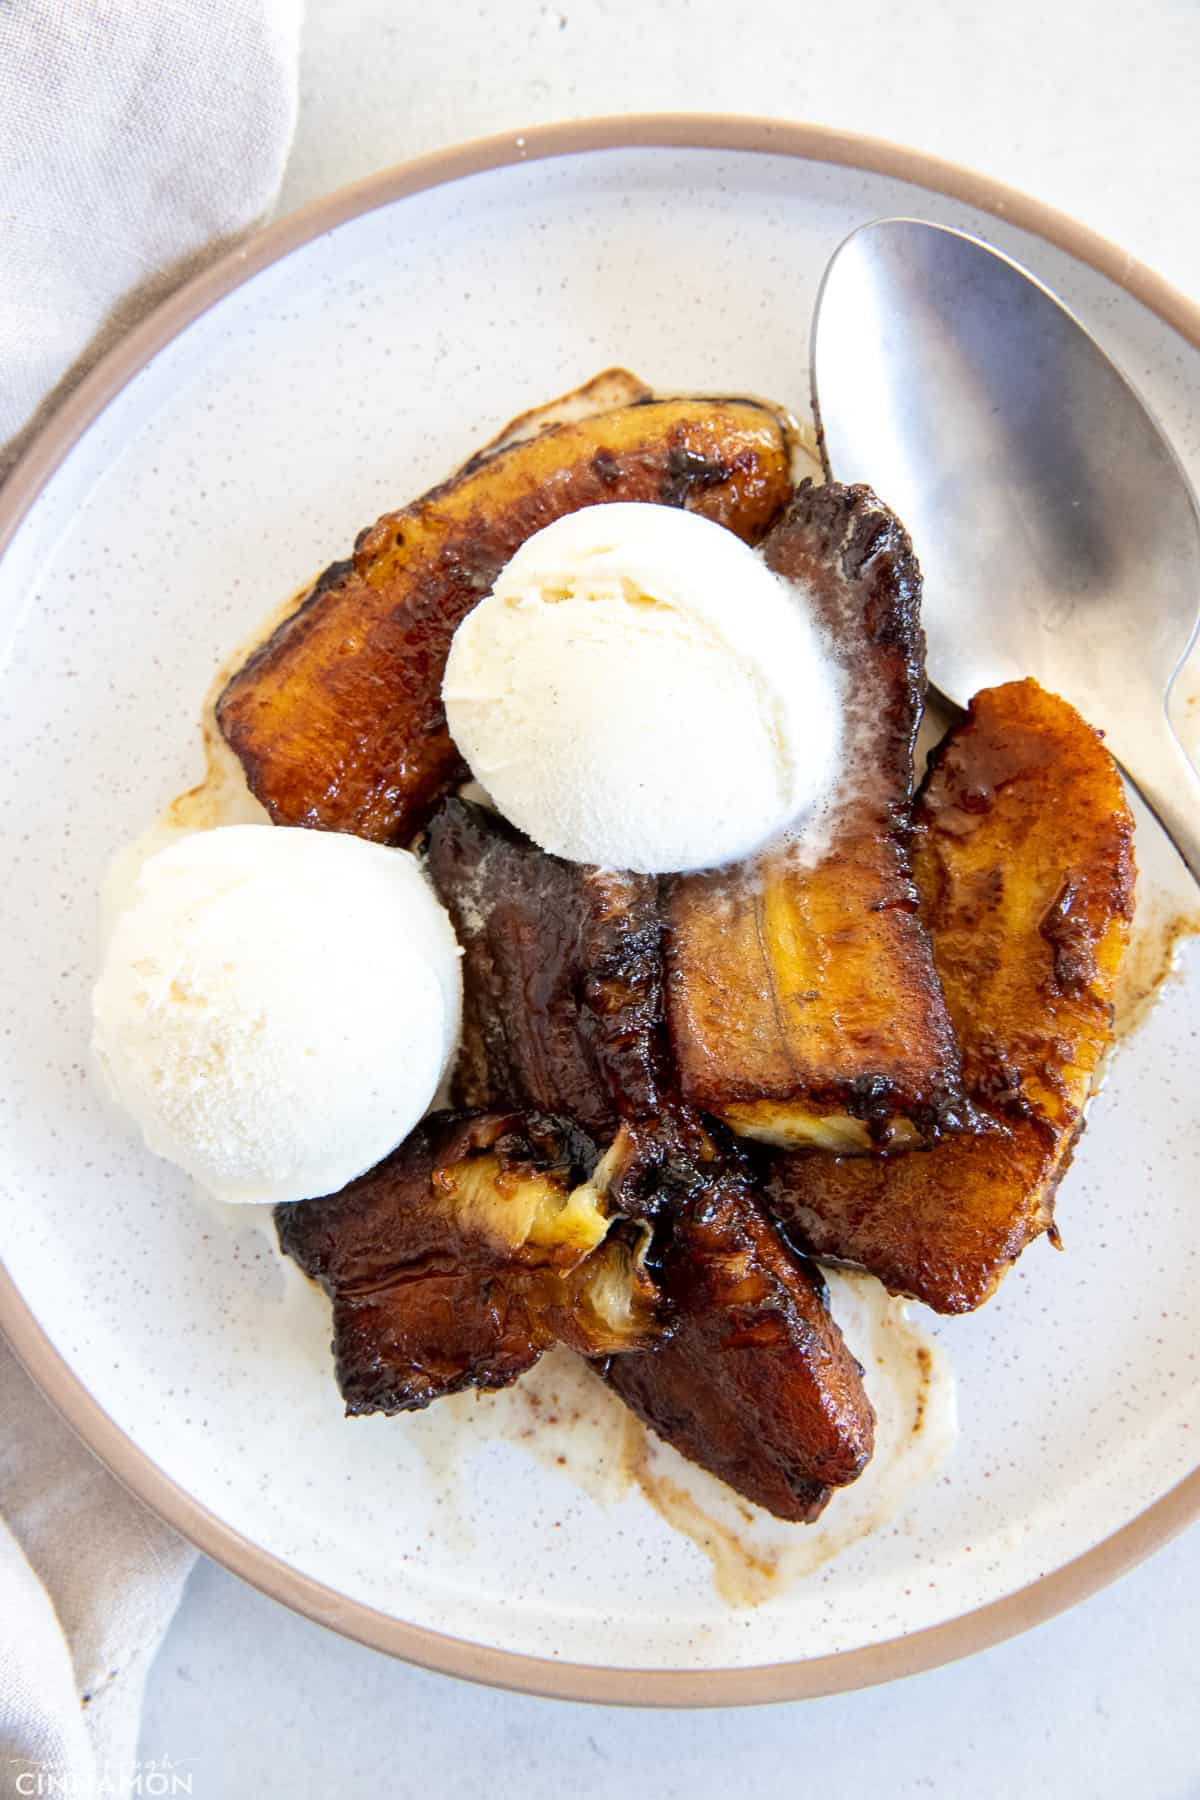 a plate with healthy banana foster topped with vanilla ice cream